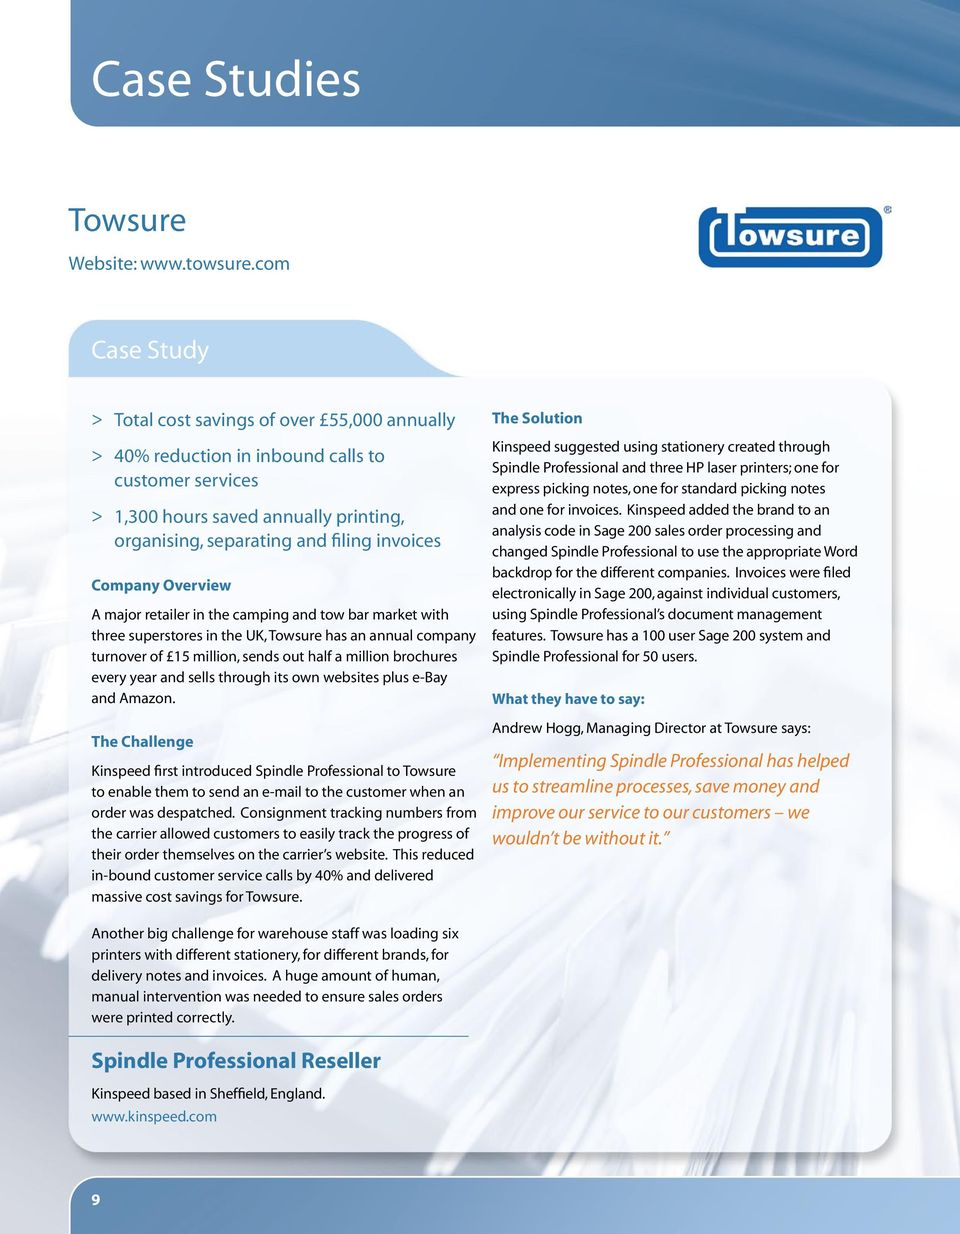 Company Overview A major retailer in the camping and tow bar market with three superstores in the UK, Towsure has an annual company turnover of 15 million, sends out half a million brochures every